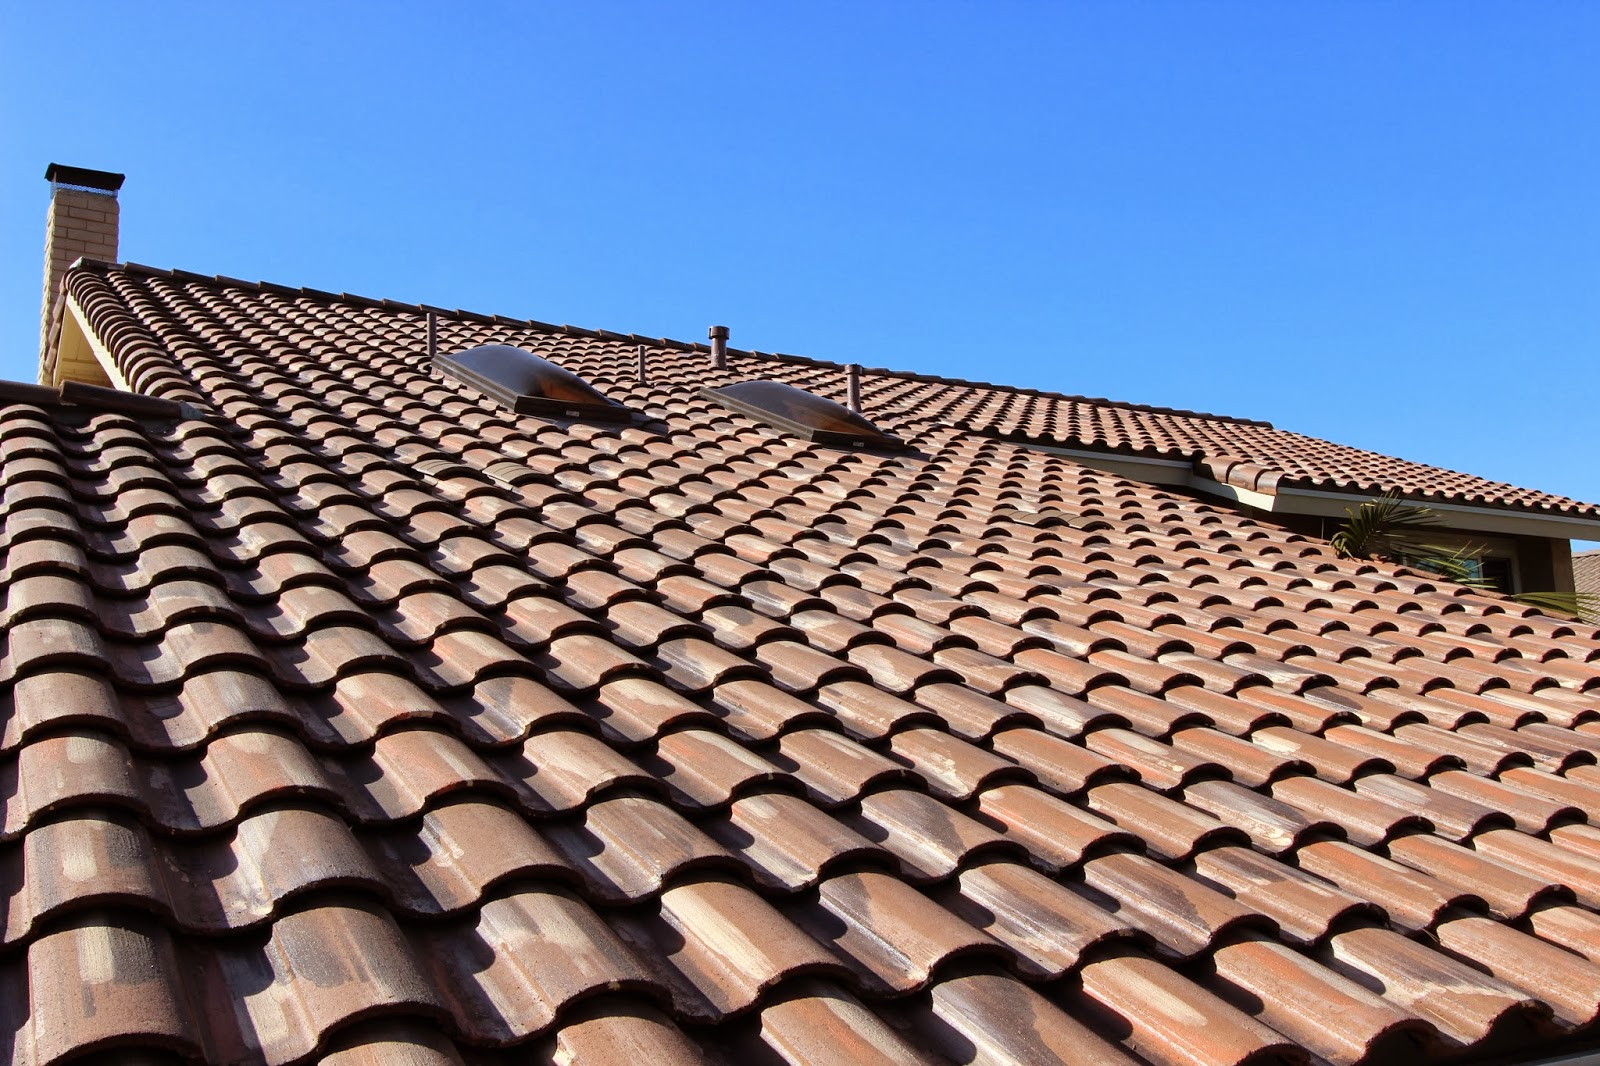 ... San Diego Roofing Company That Specializes In Roof Installations And  Roof Repair. We Service Escondido, San Marcos, Encinitas, Rancho Santa Fe,  Poway, ...